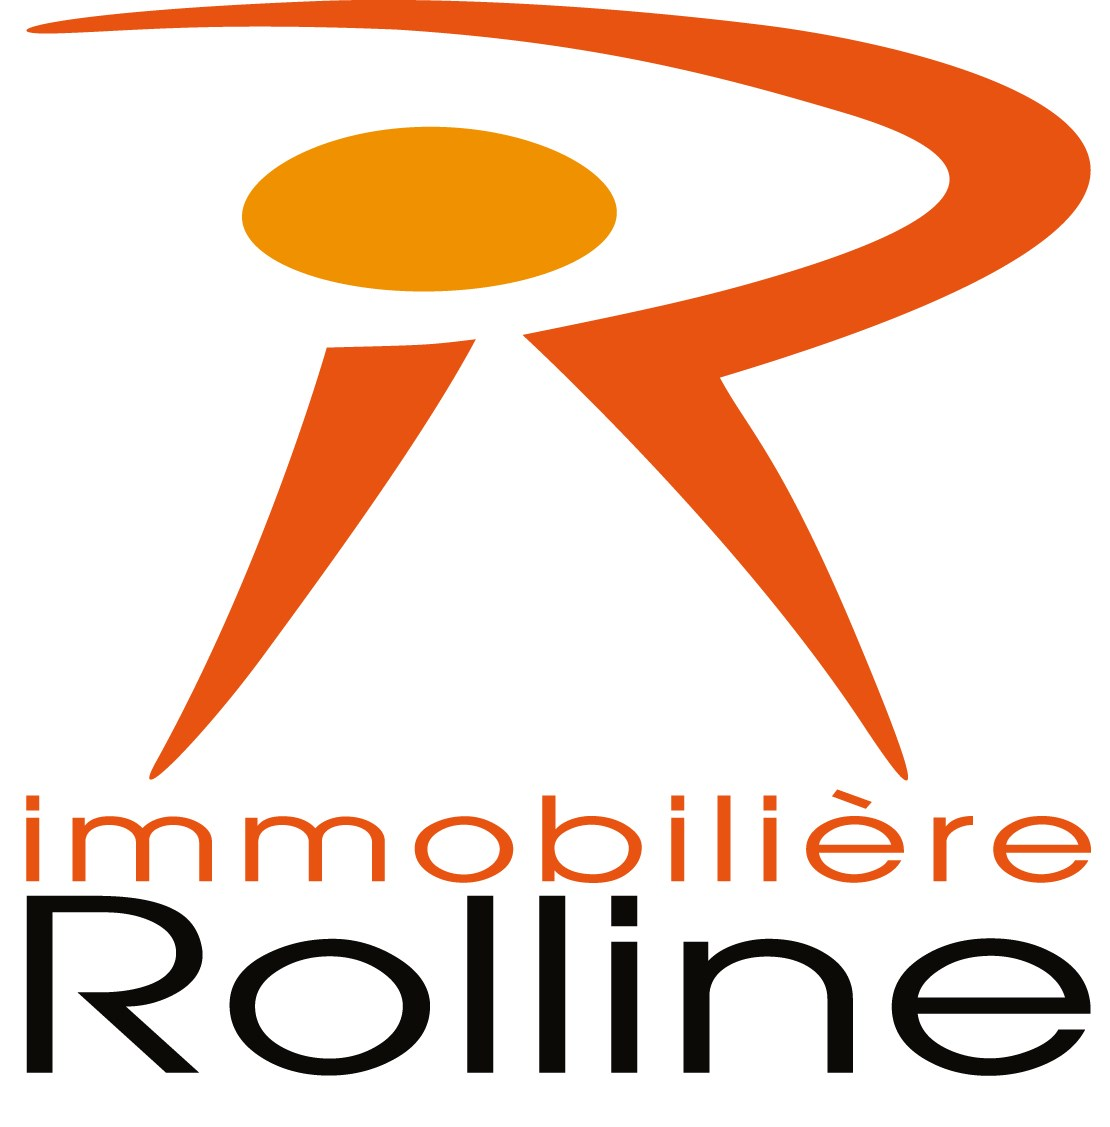 Immobiliere rolline agence immobili re paris for Agence immobiliere xaxu l escala